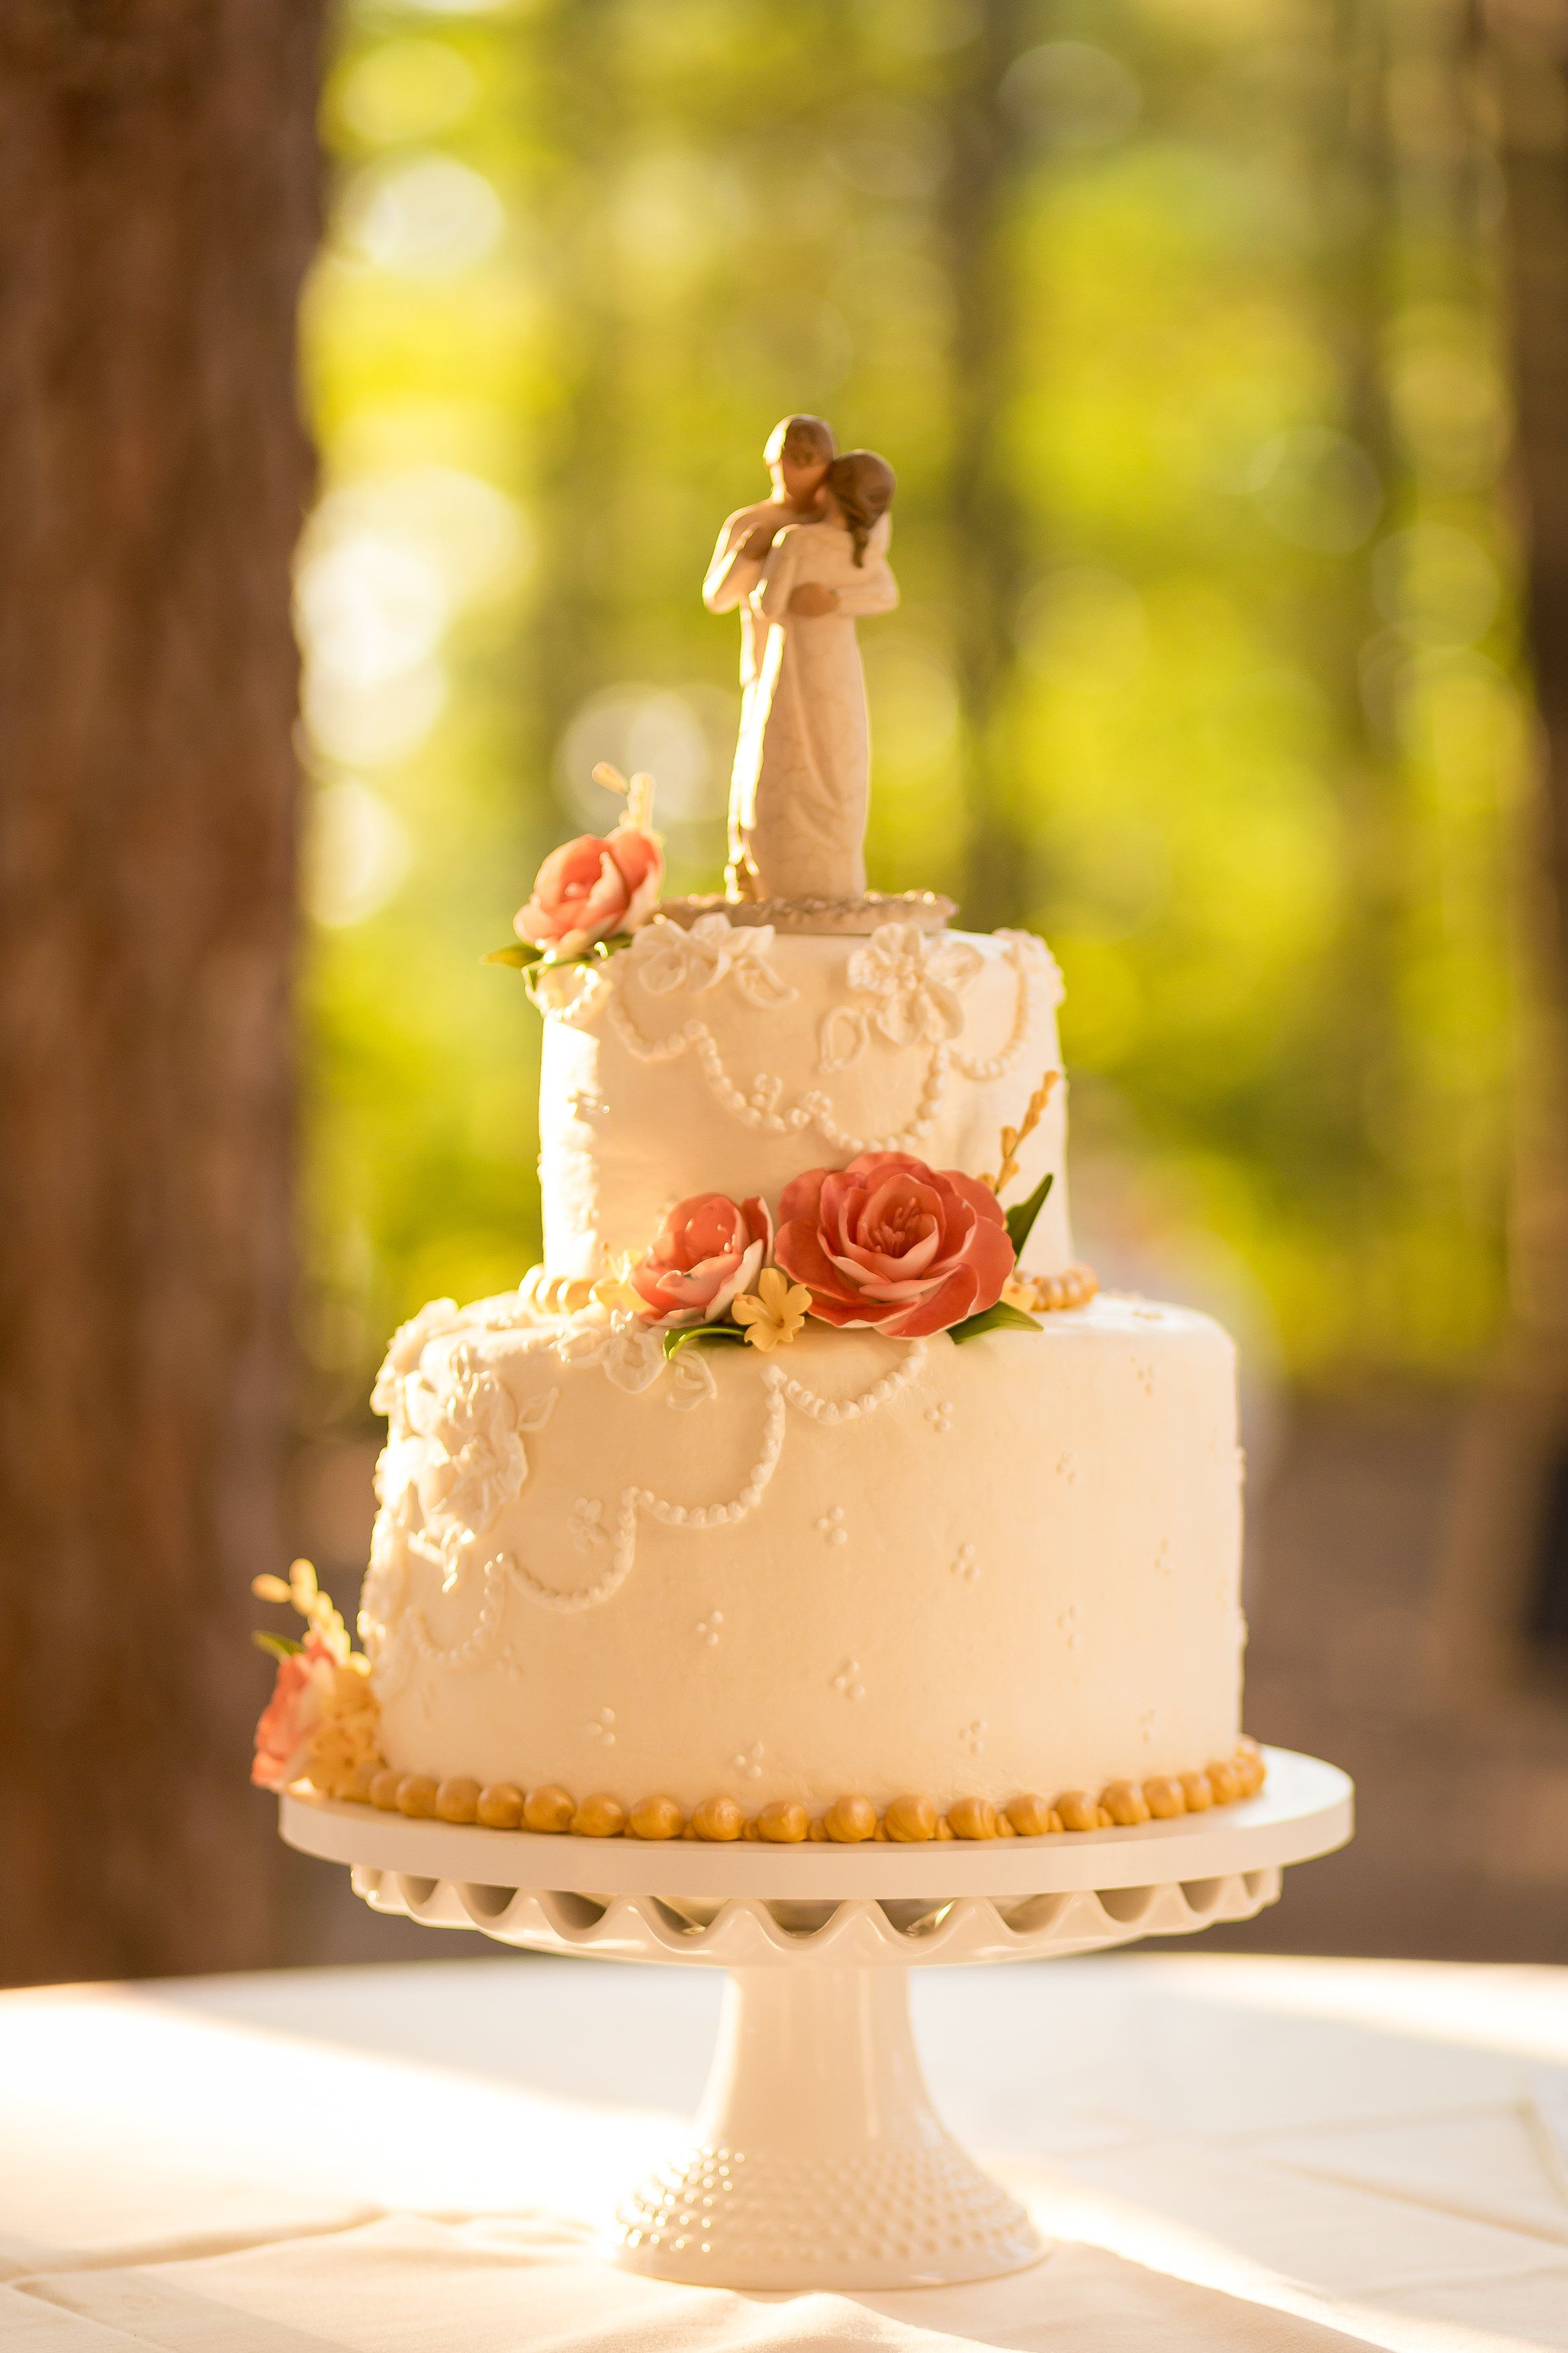 Wedding Cake By Baker S Kitchen With The Willow Tree Cake Topper